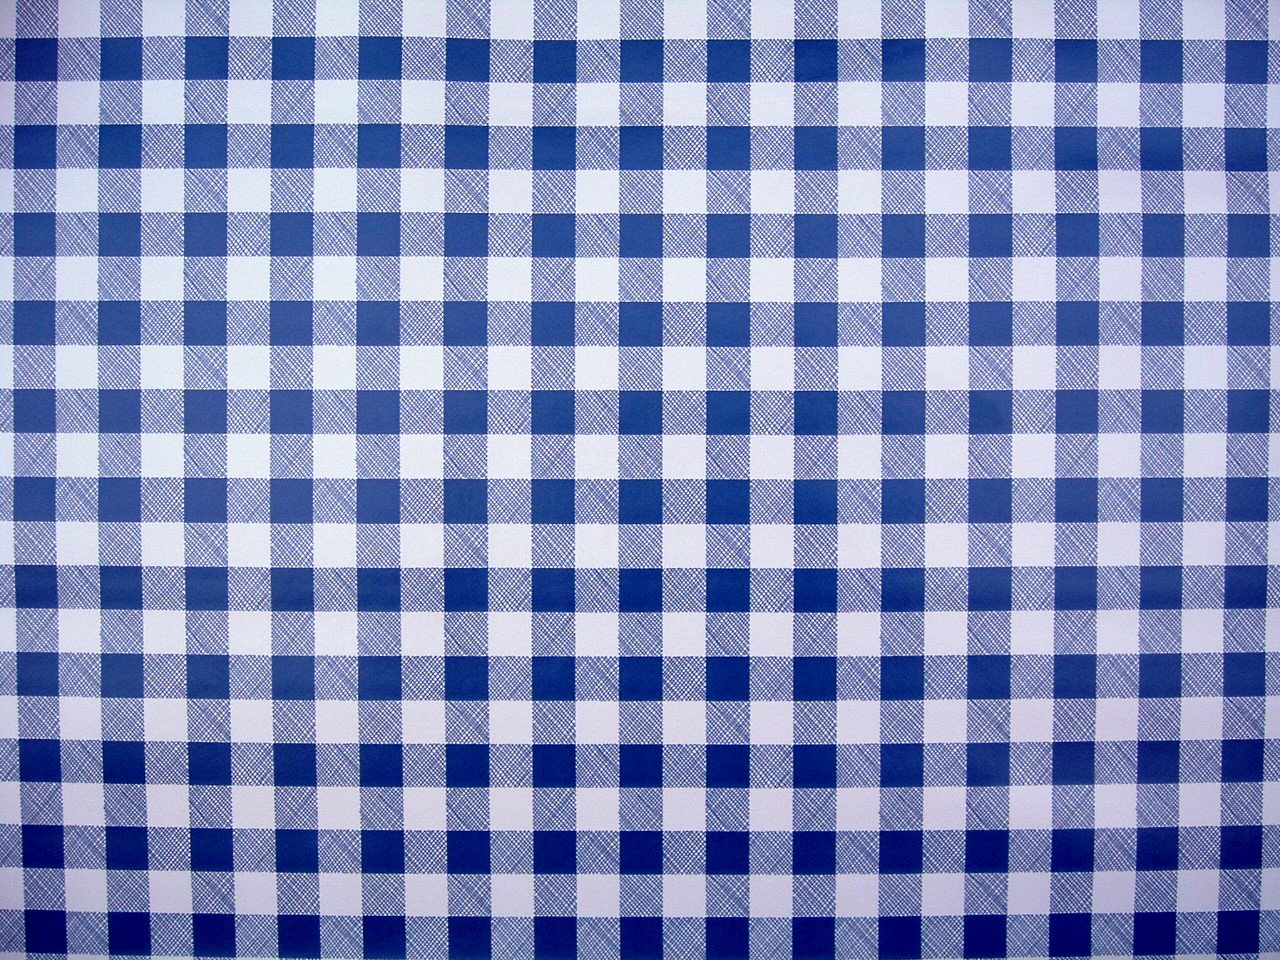 Superieur THE TABLECLOTH SHOP Blue Gingham Vinyl Tablecloth Table Cover 2 Metres:  Amazon.co.uk: Kitchen U0026 Home